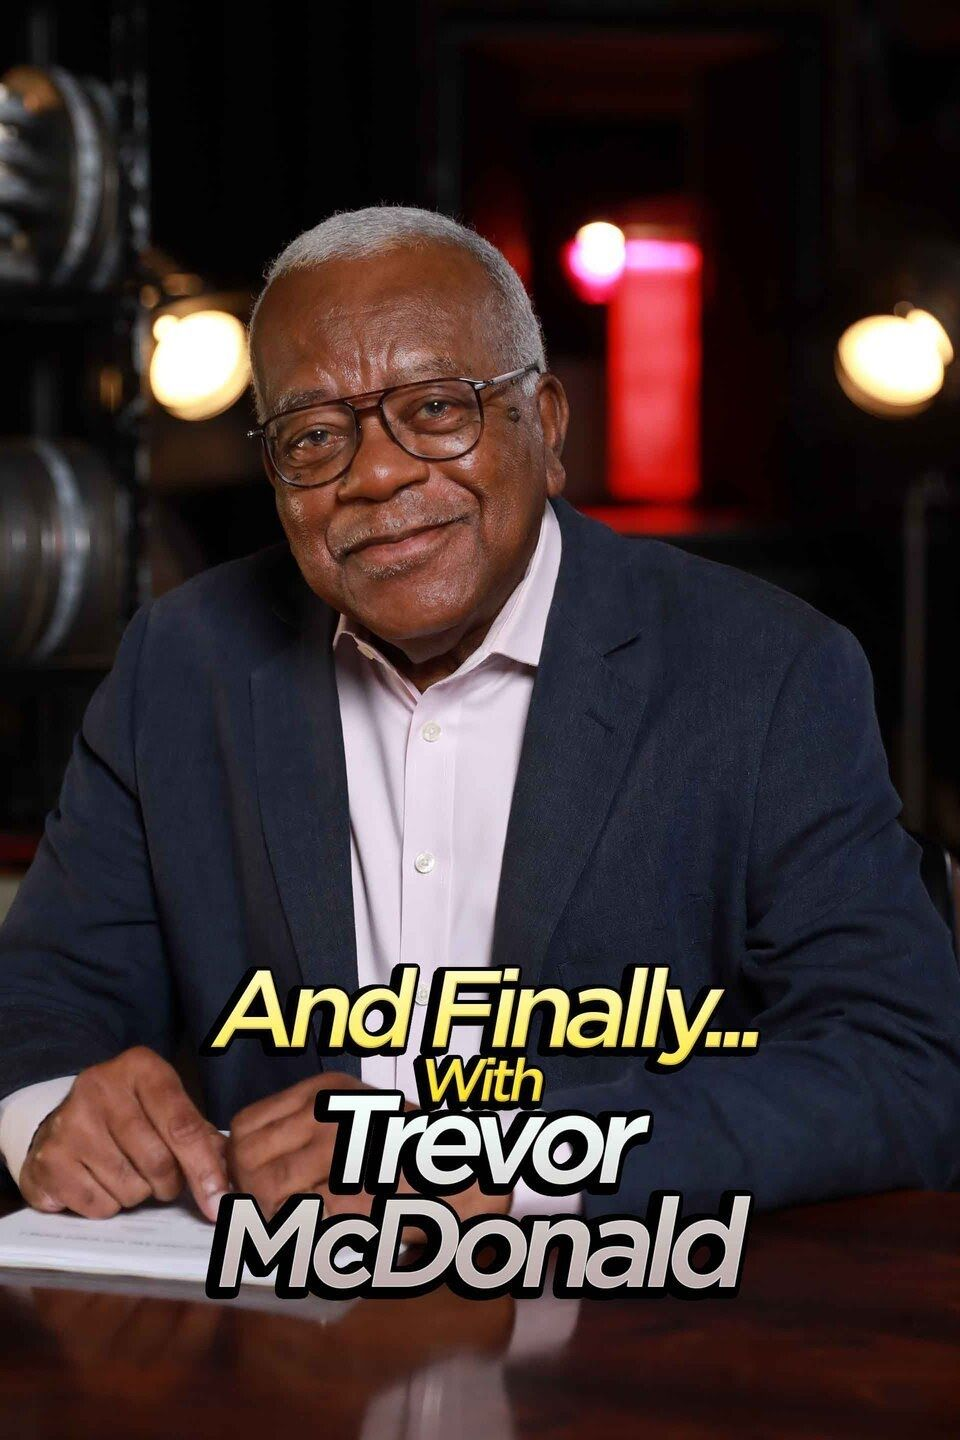 And Finally… with Trevor McDonald ne zaman